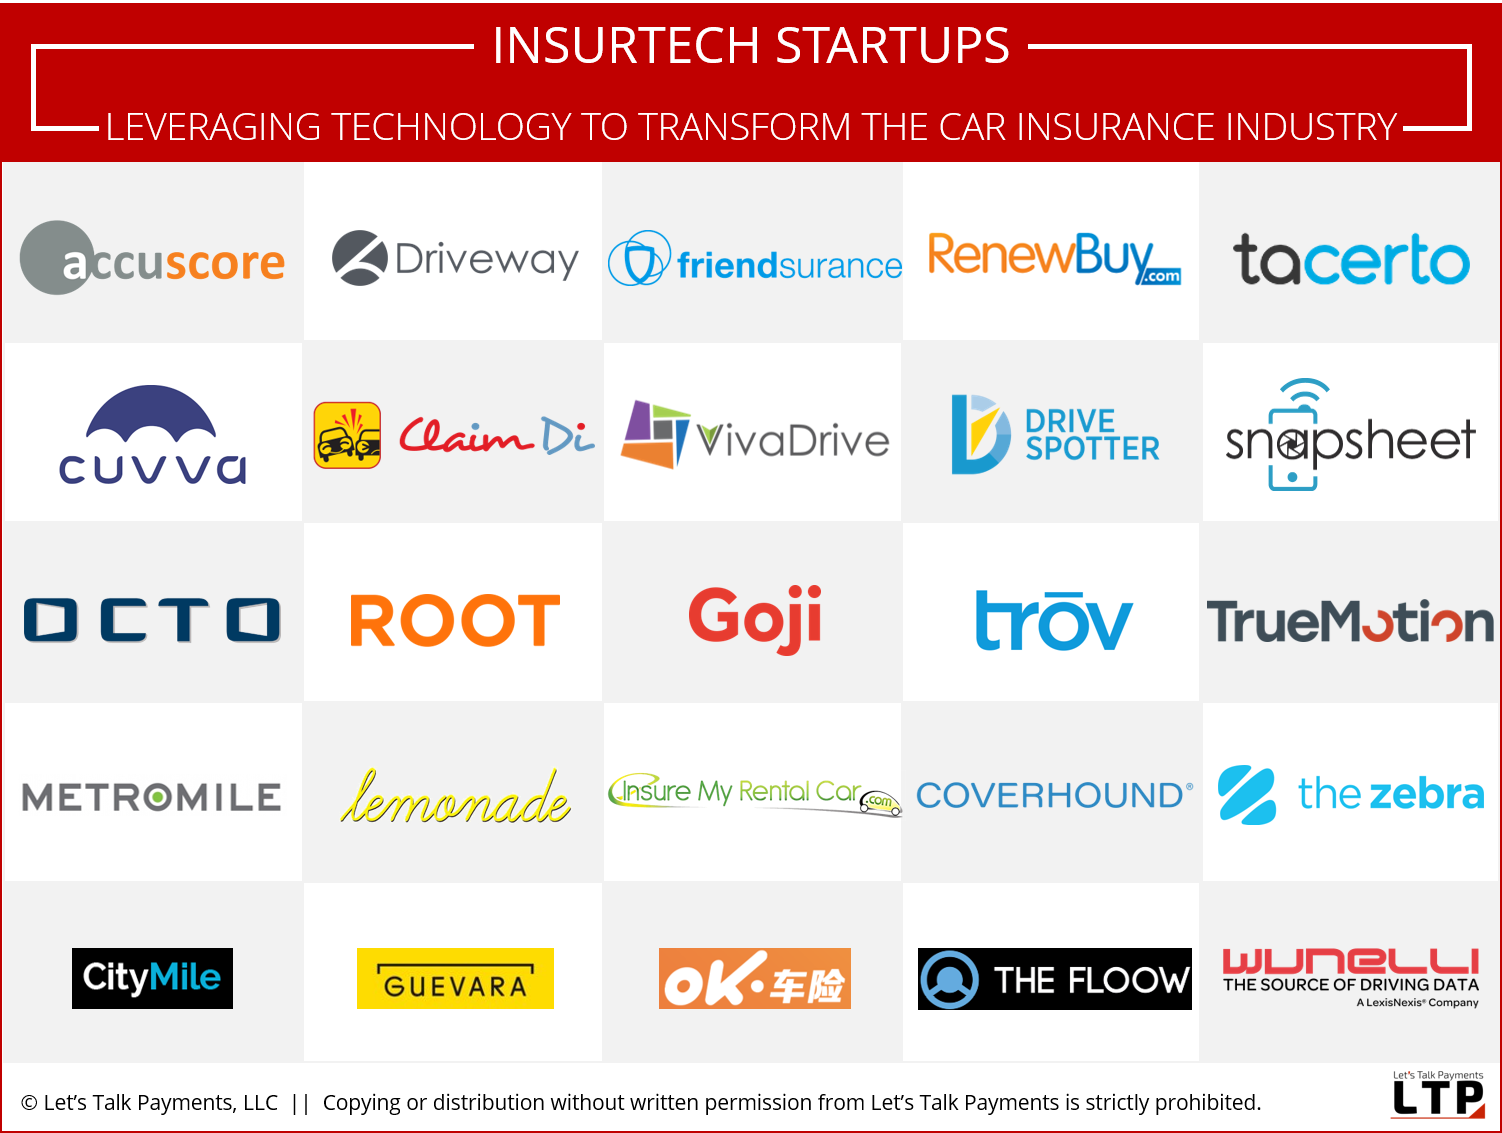 Insurtech Startups Leveraging Technology To Transform The Car